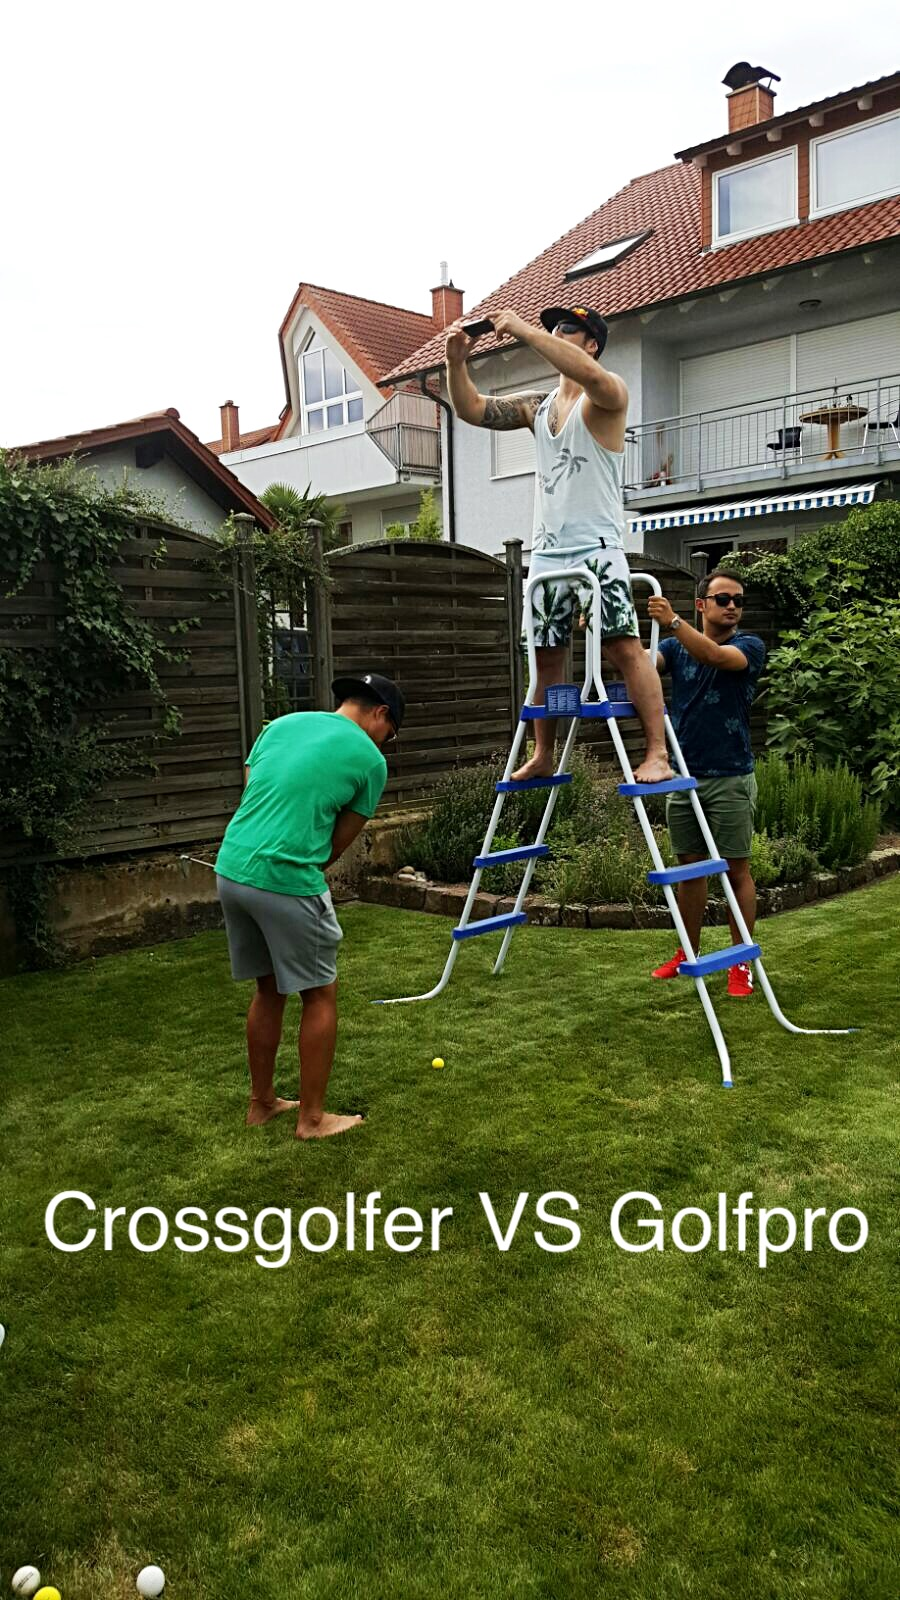 Crossgolfer VS Golfpro Part 1